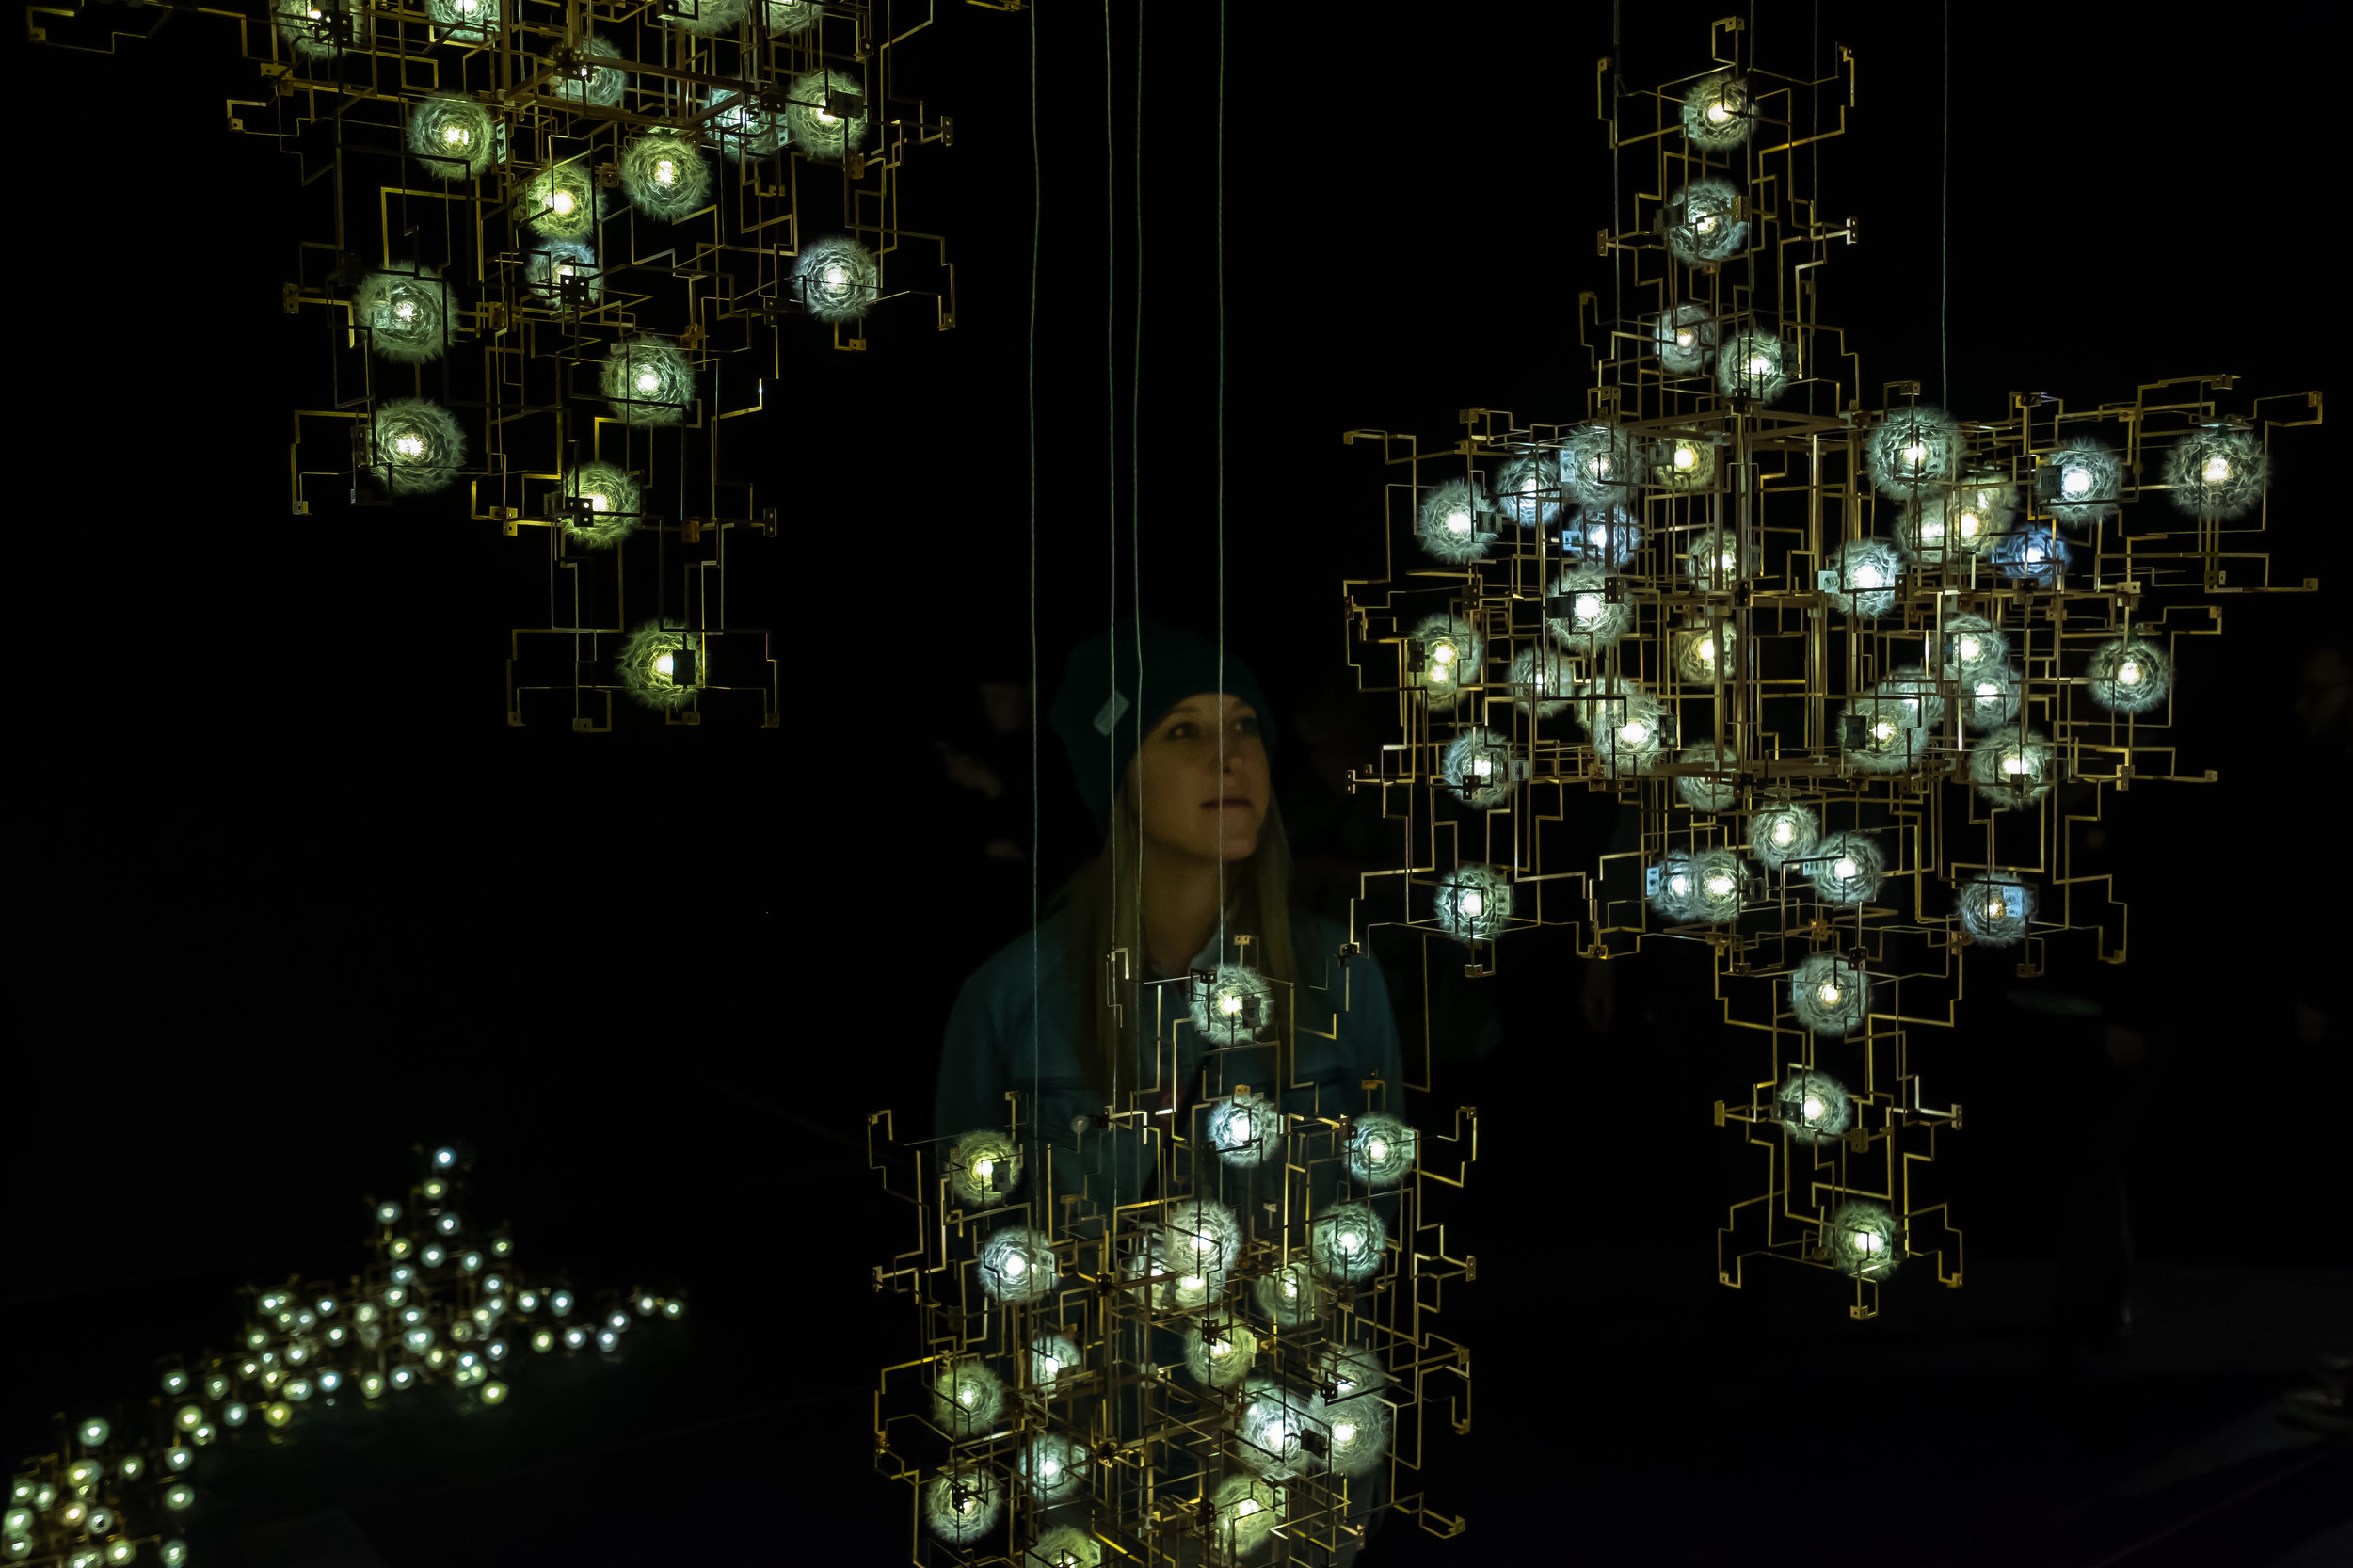 One of our favorite exhibits! These light bulbs represent dandelions. So pretty!